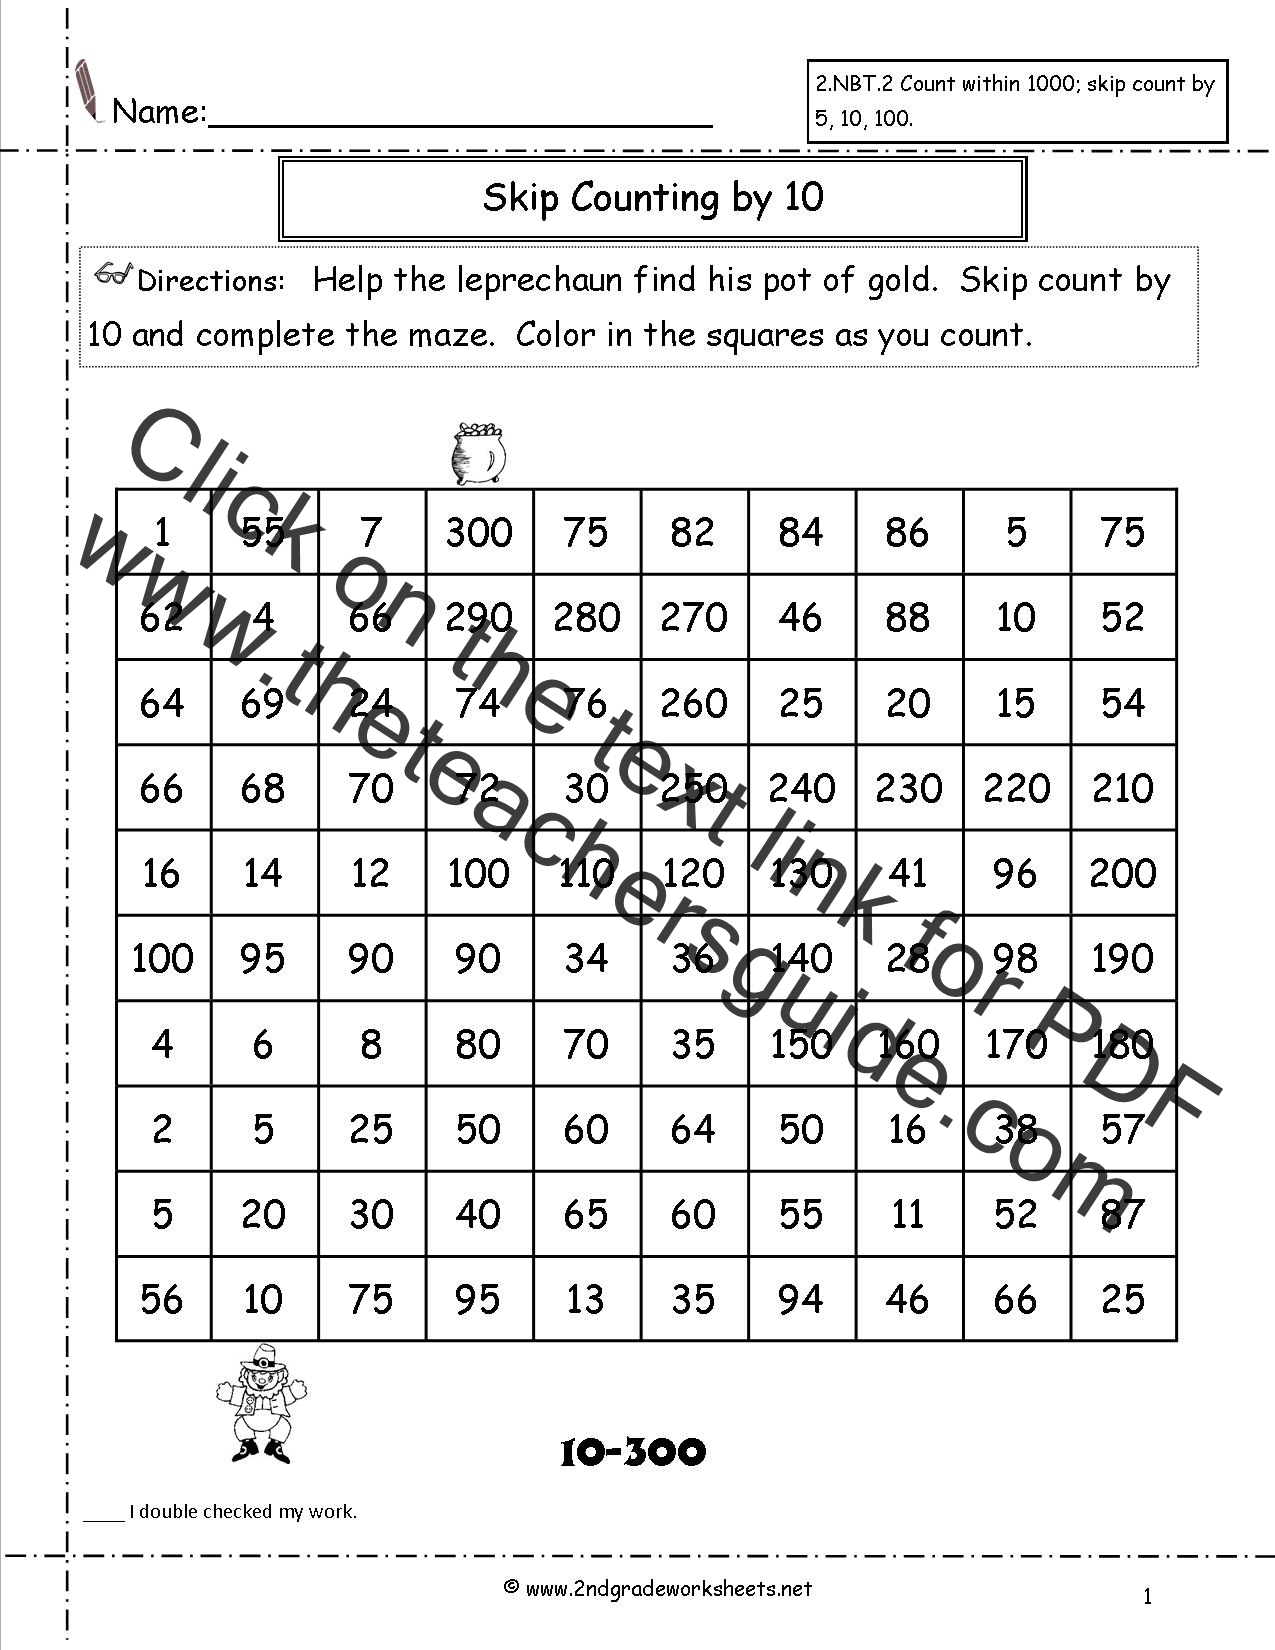 26 Counting By 10 Worksheet